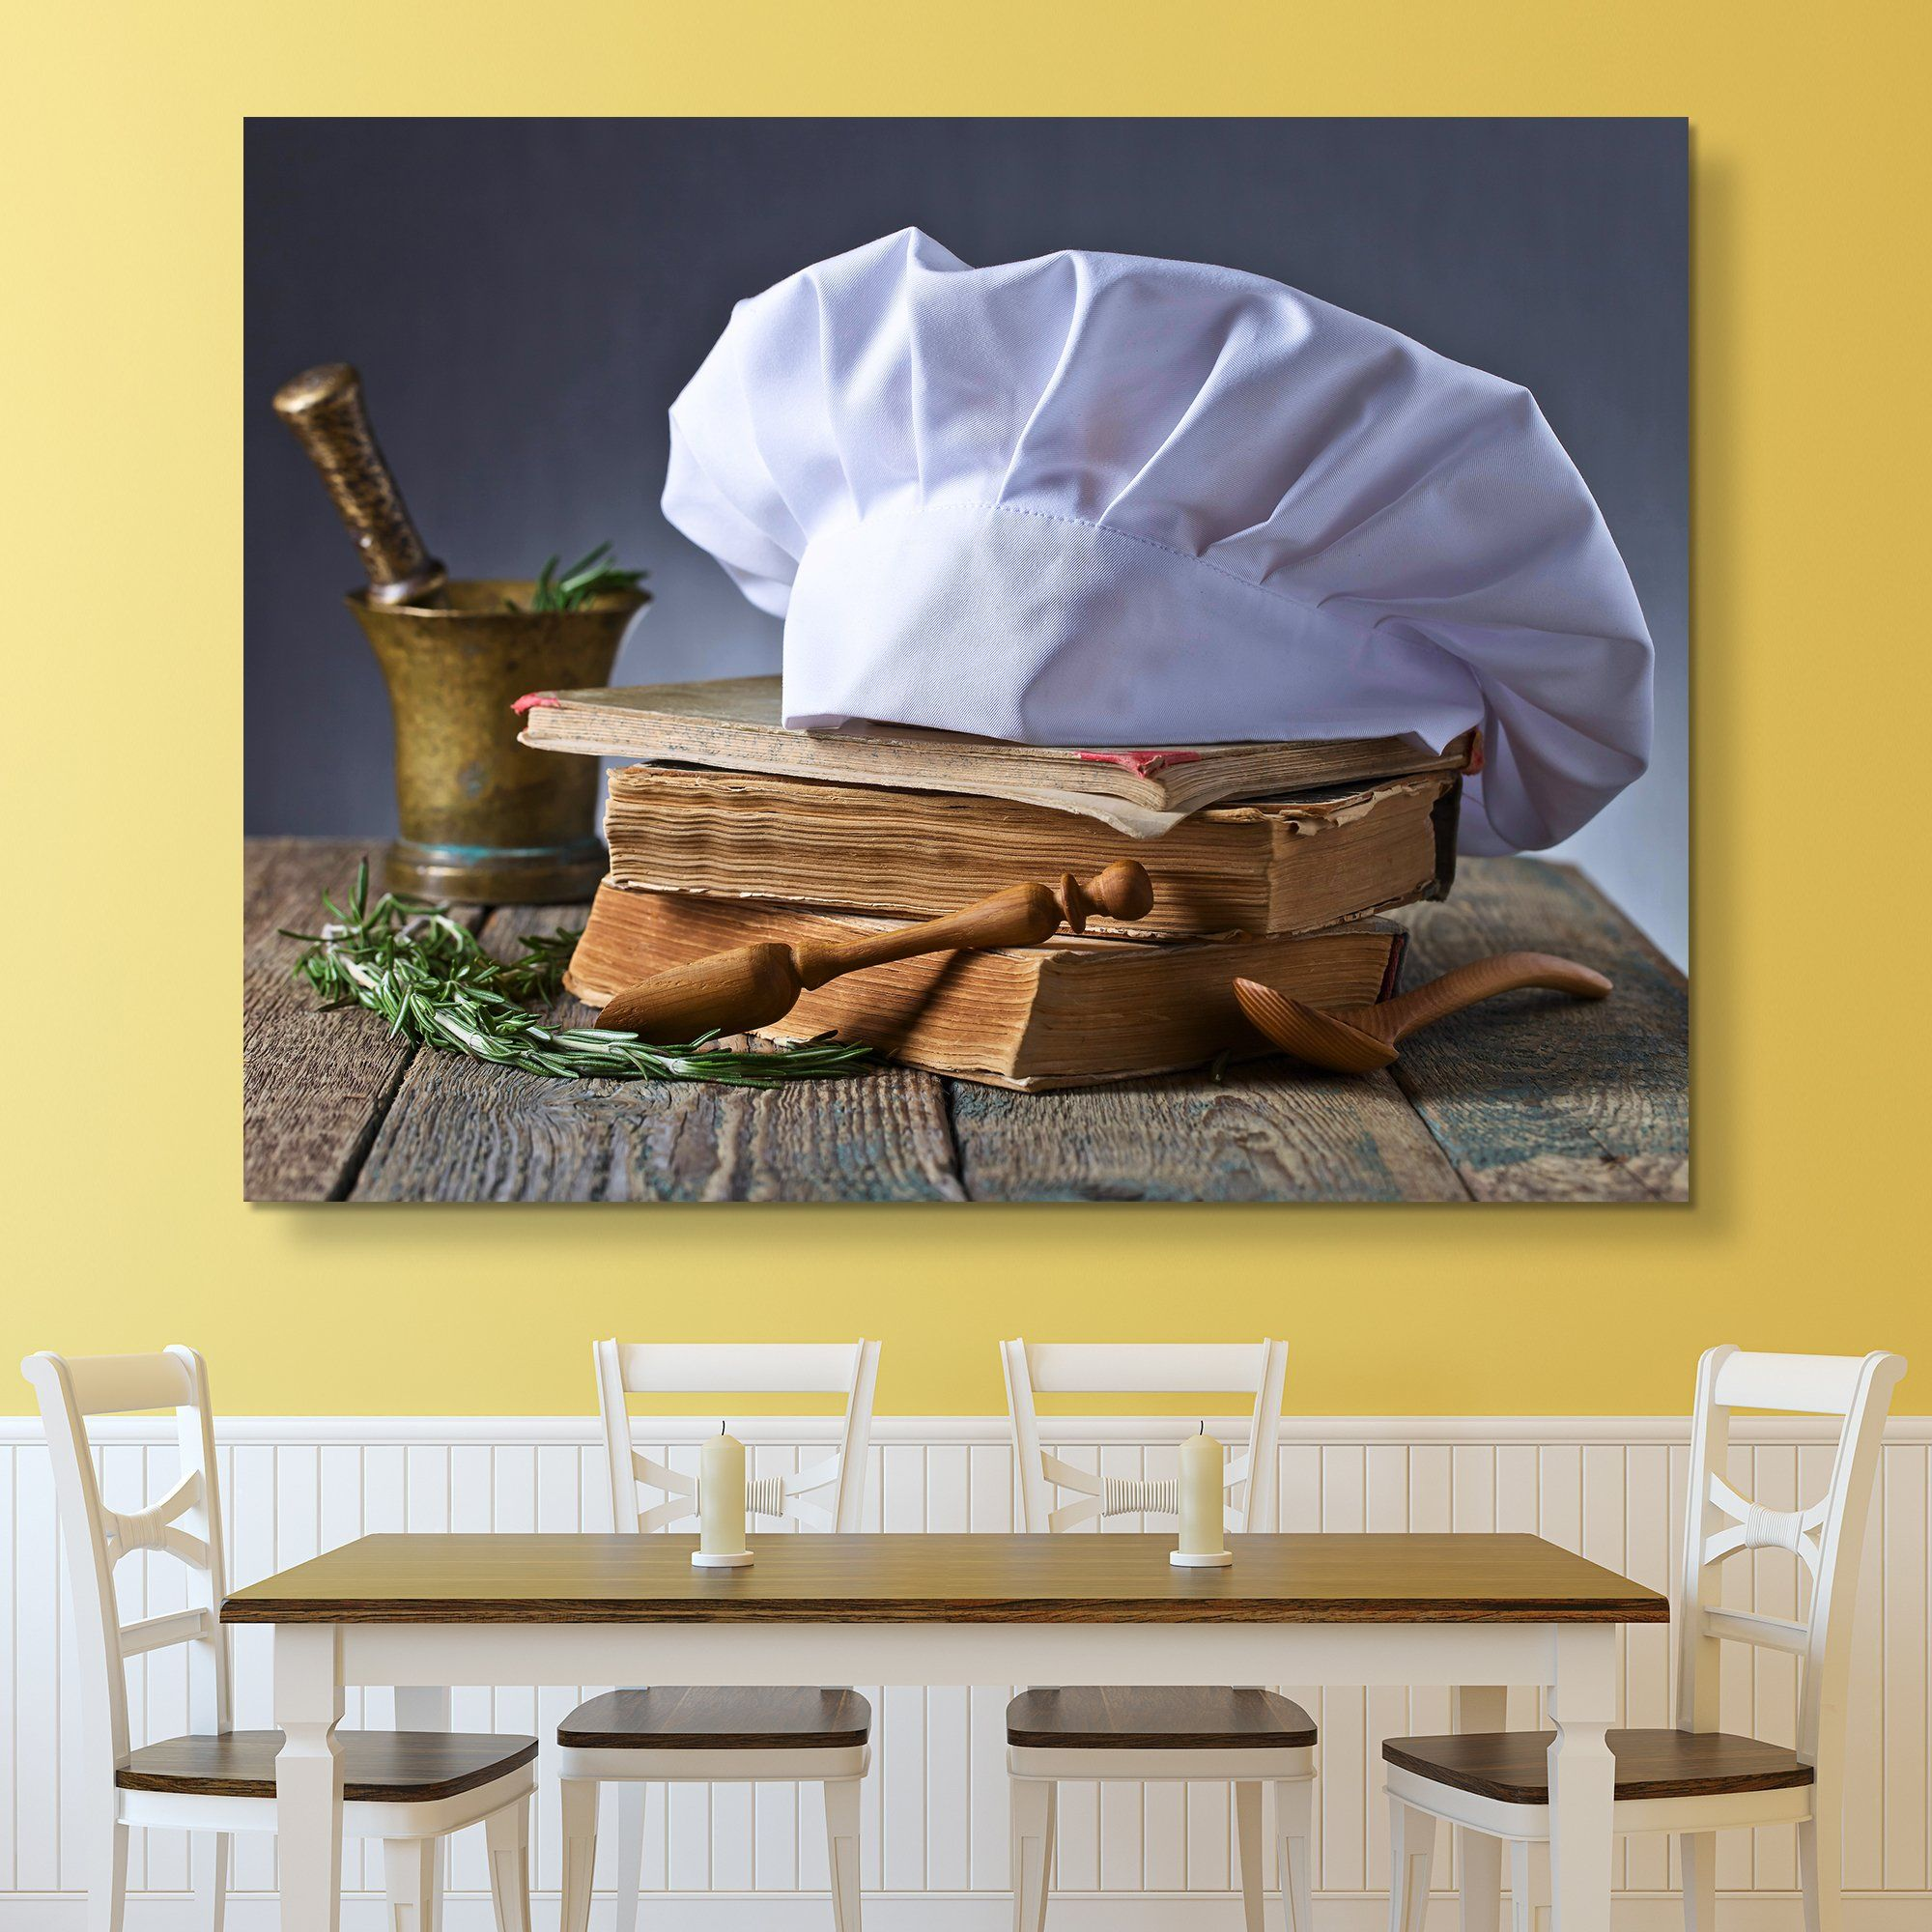 recipe and Chef's Hat wall art